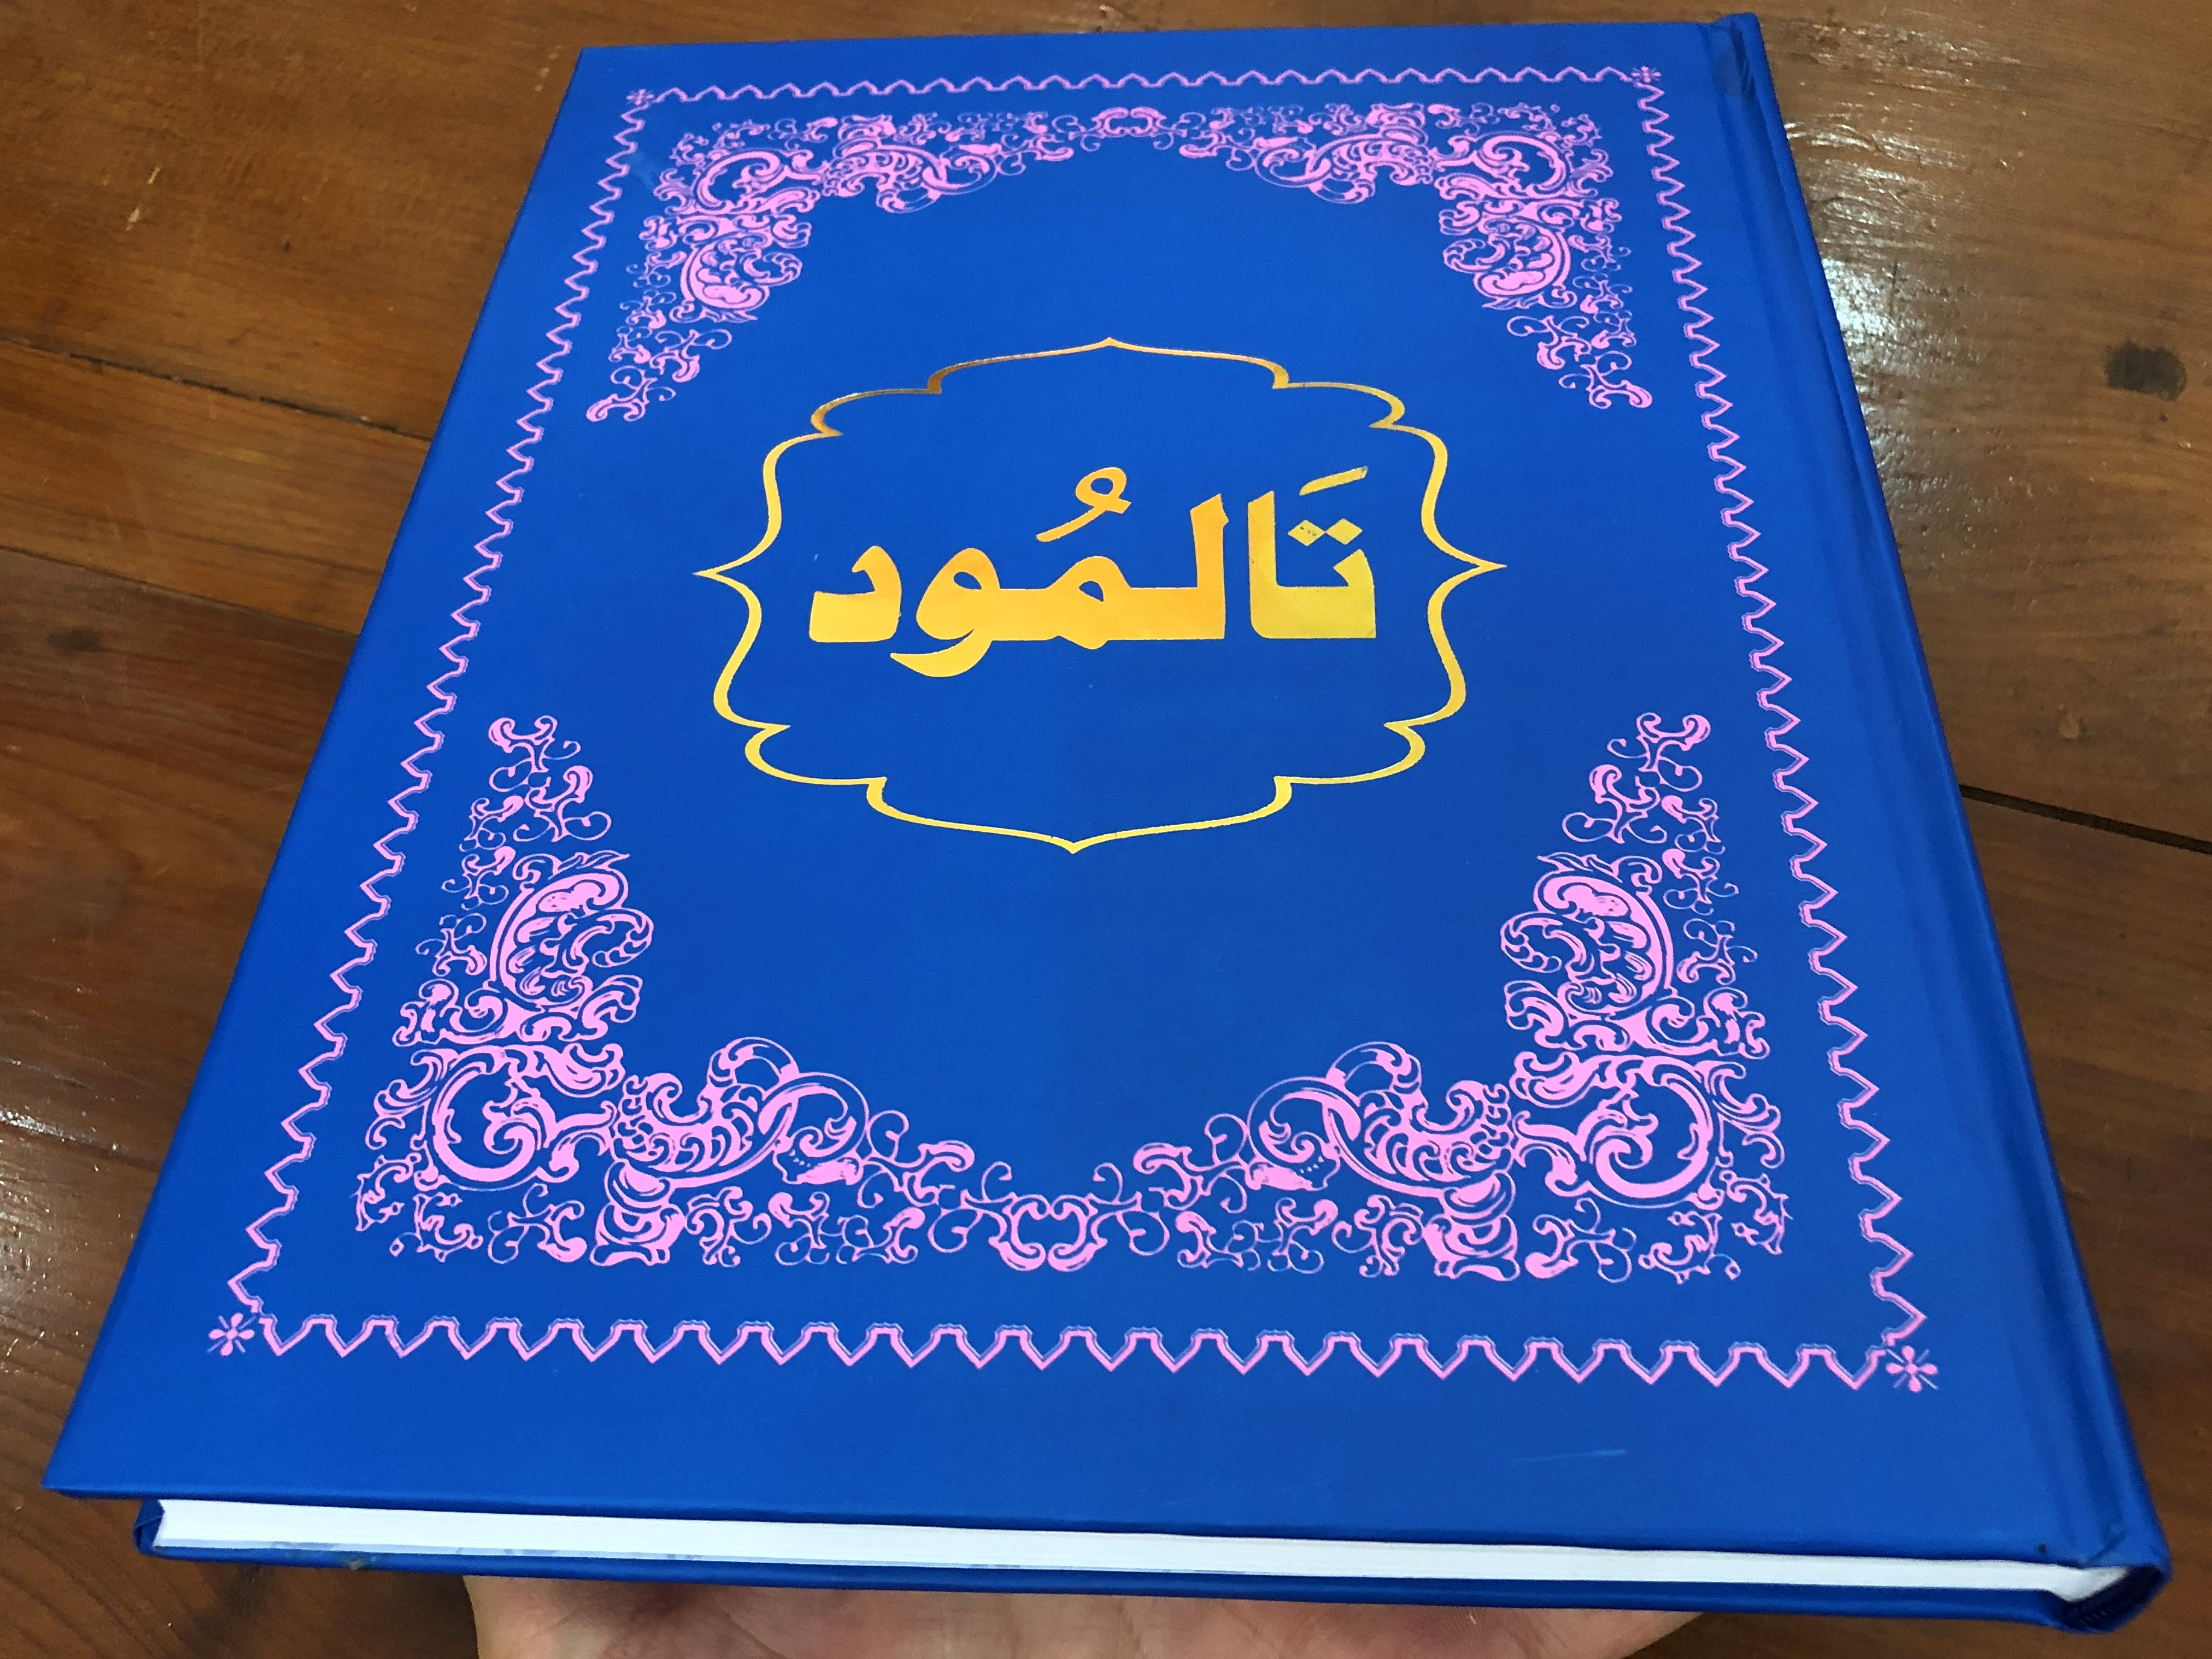 the-talmud-in-urdu-language-pakistan-hardcover-2018-14-.jpg